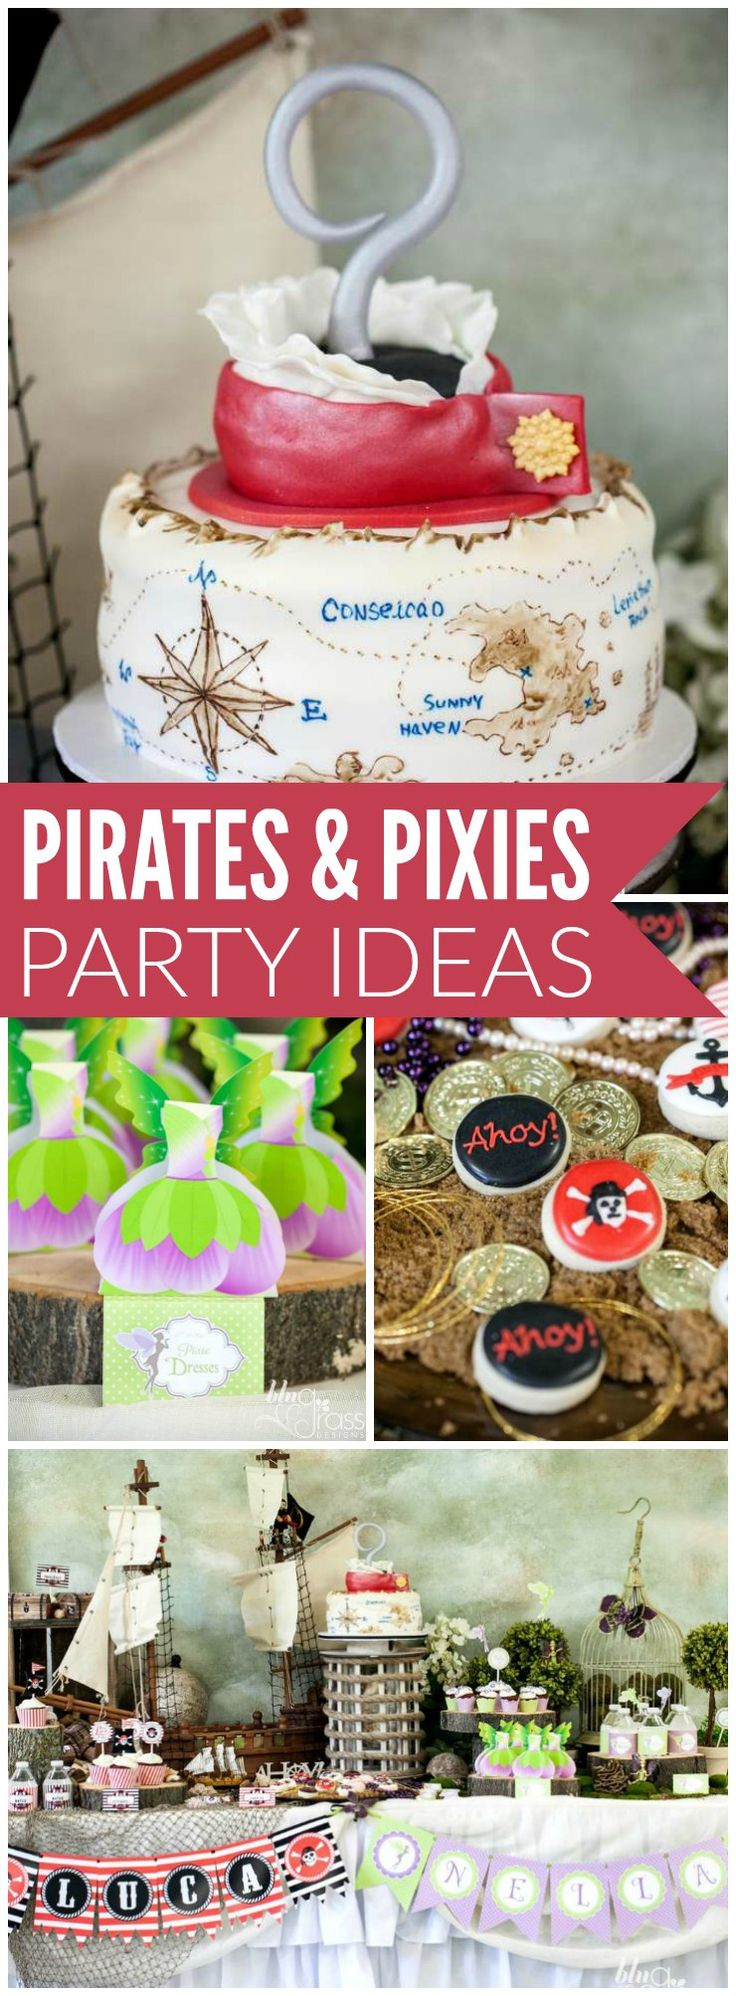 This incredible party combines pirates and pixies! See more party ideas at CatchMyParty.com!